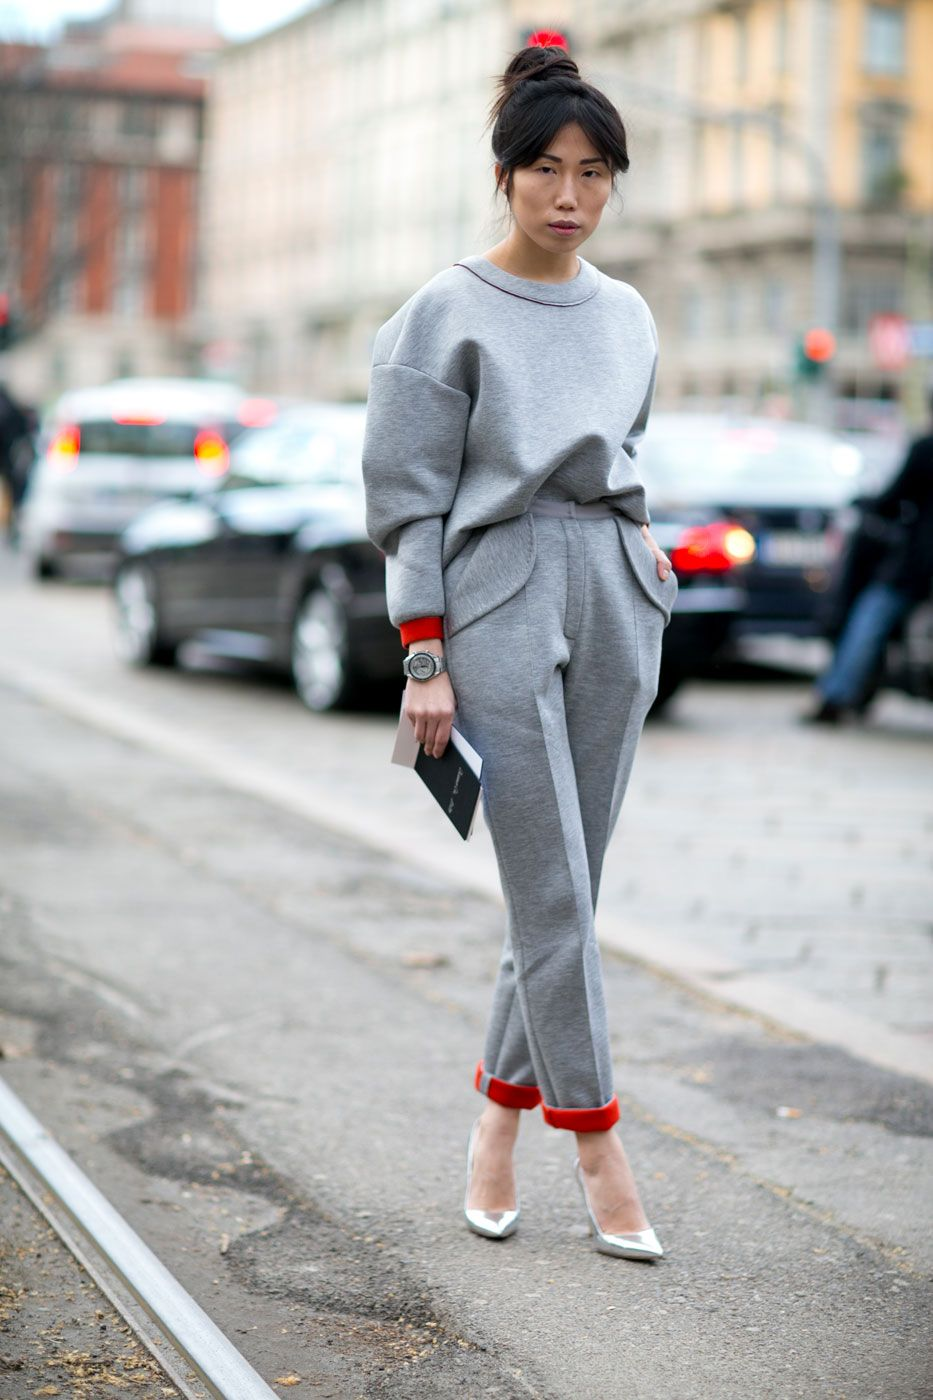 21 Street Style Looks That Prove Metallic Shoes Are Always the Right Choice 21 Street Style Looks That Prove Metallic Shoes Are Always the Right Choice new picture